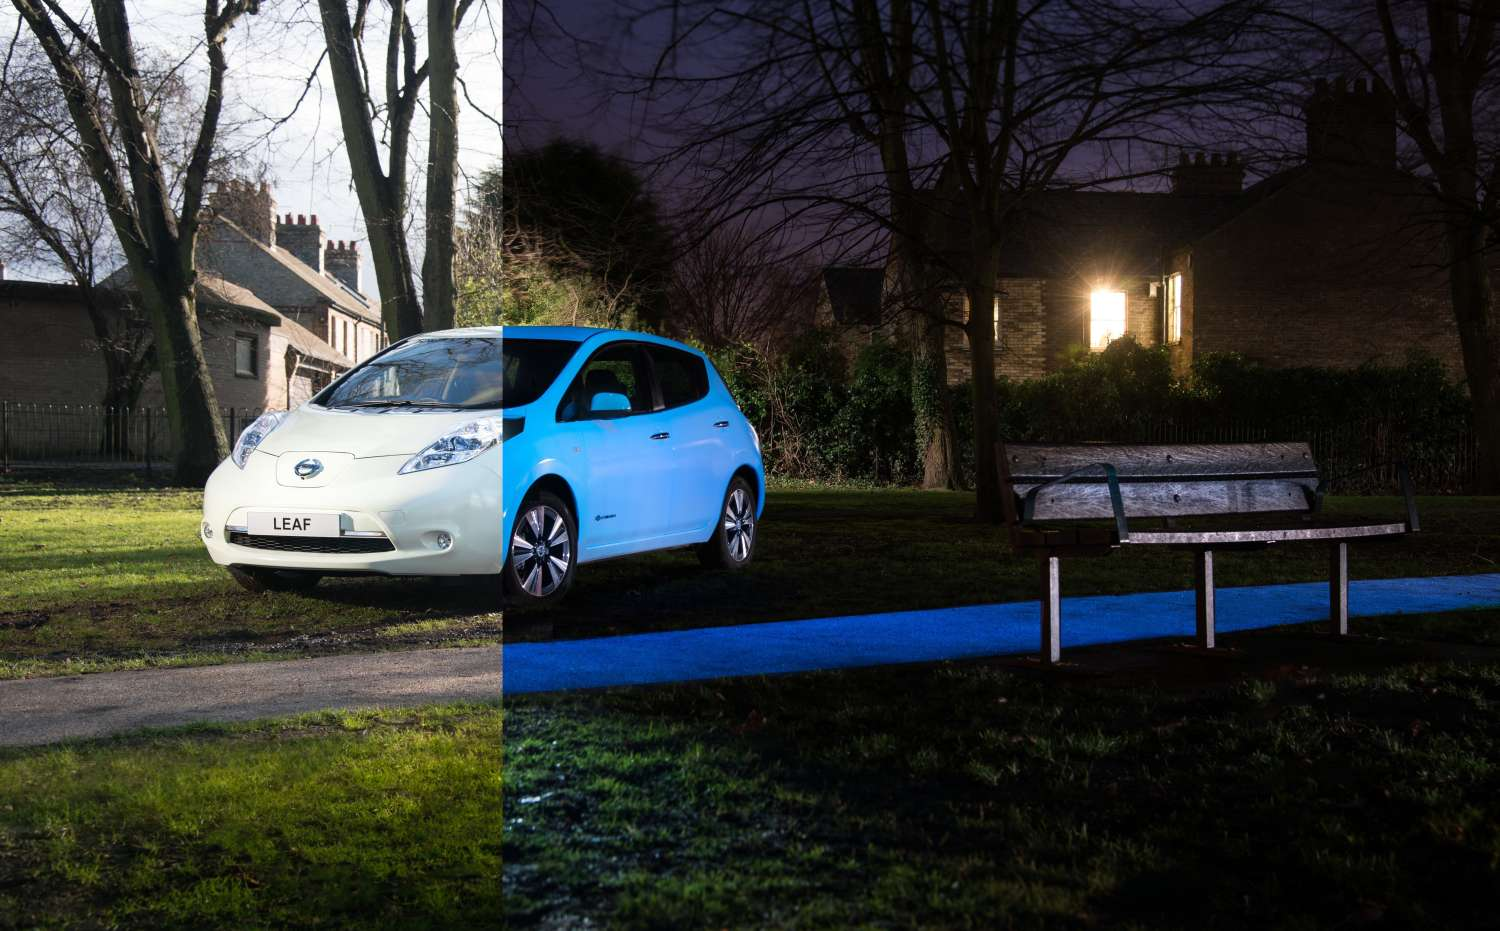 Nissan-leaf-glow-in-the-dark2-app